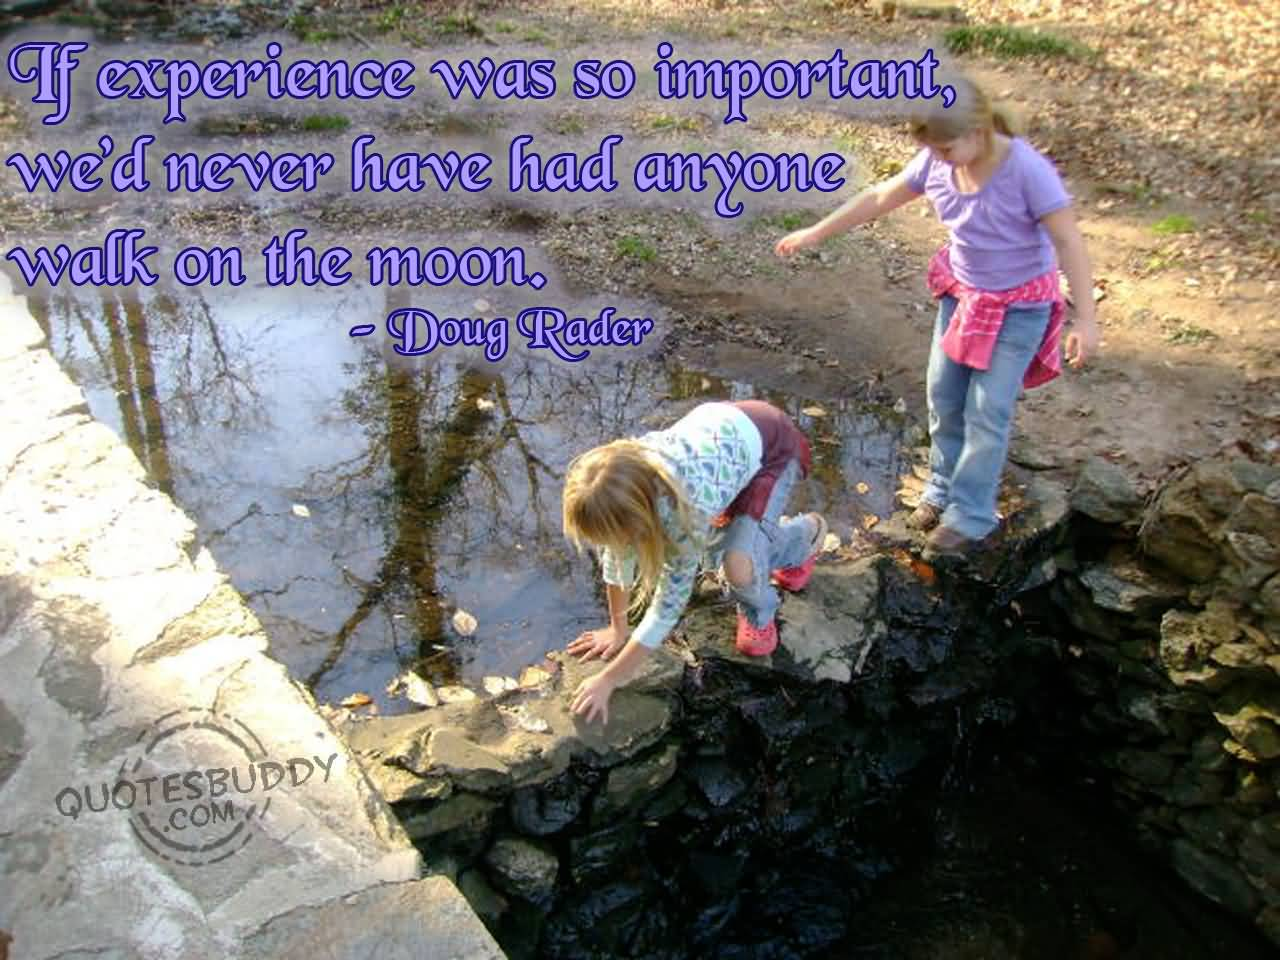 Experience Quotes if experience was so important we'd never have had anyone walk on the moon